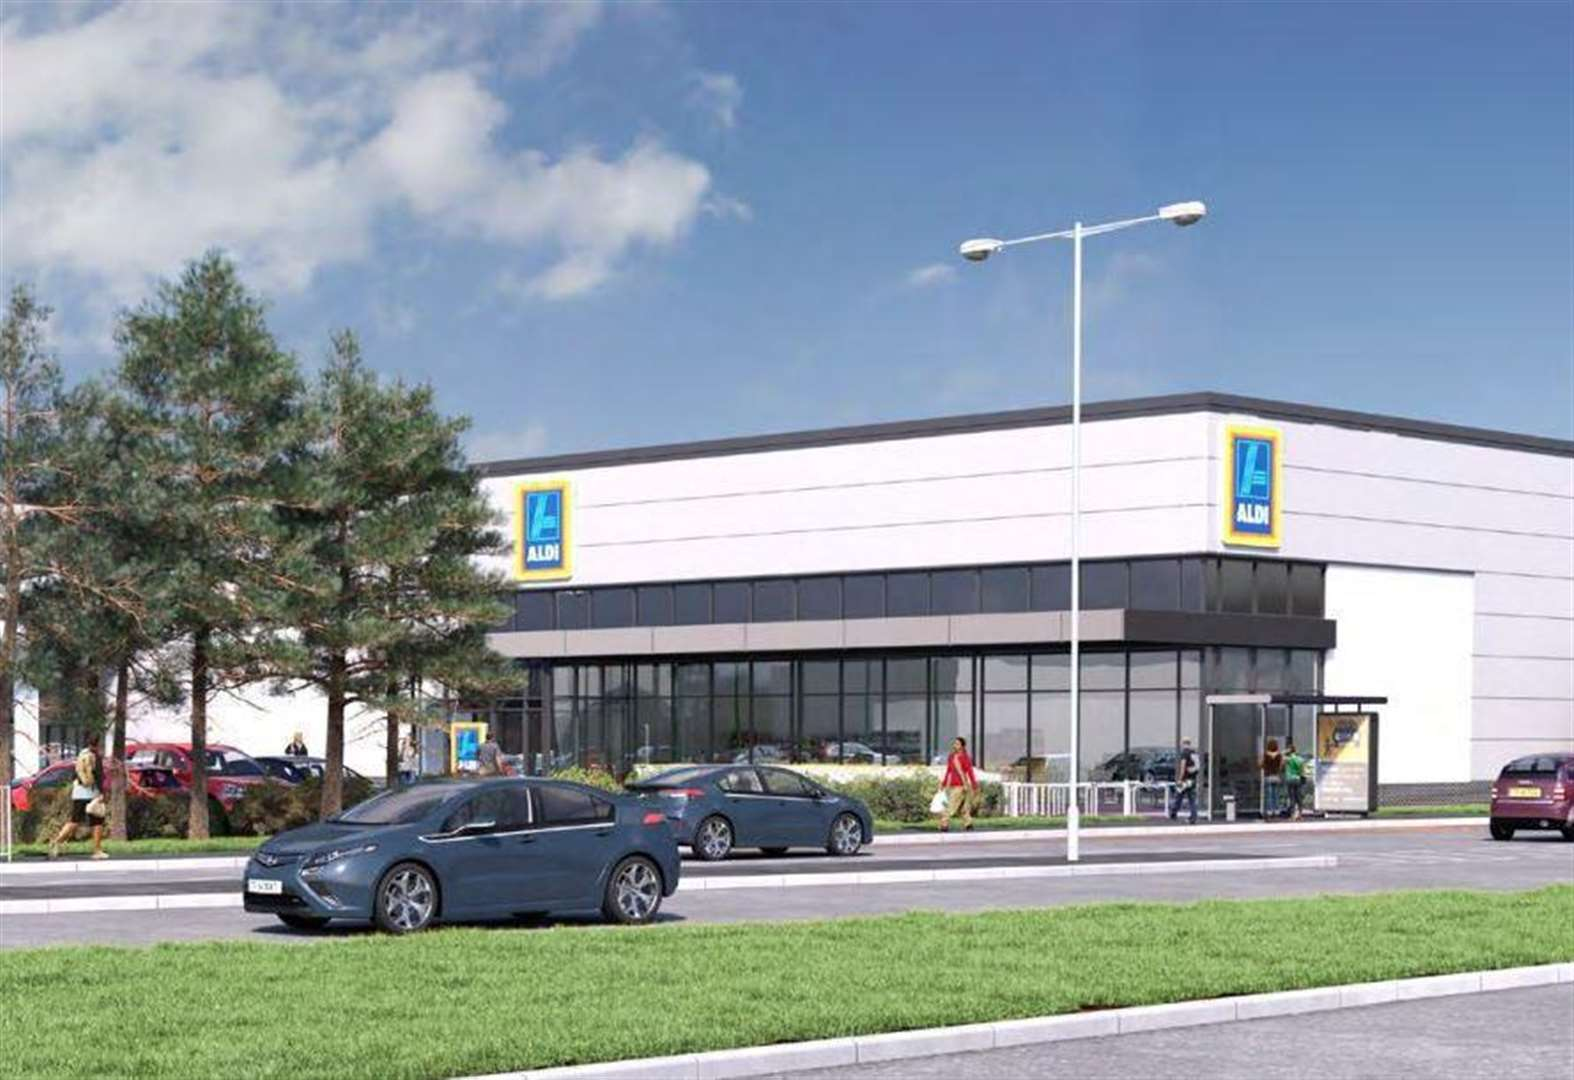 Aldi Herne Kfc And Aldi Plans At Horsted Retail Park Given The Green